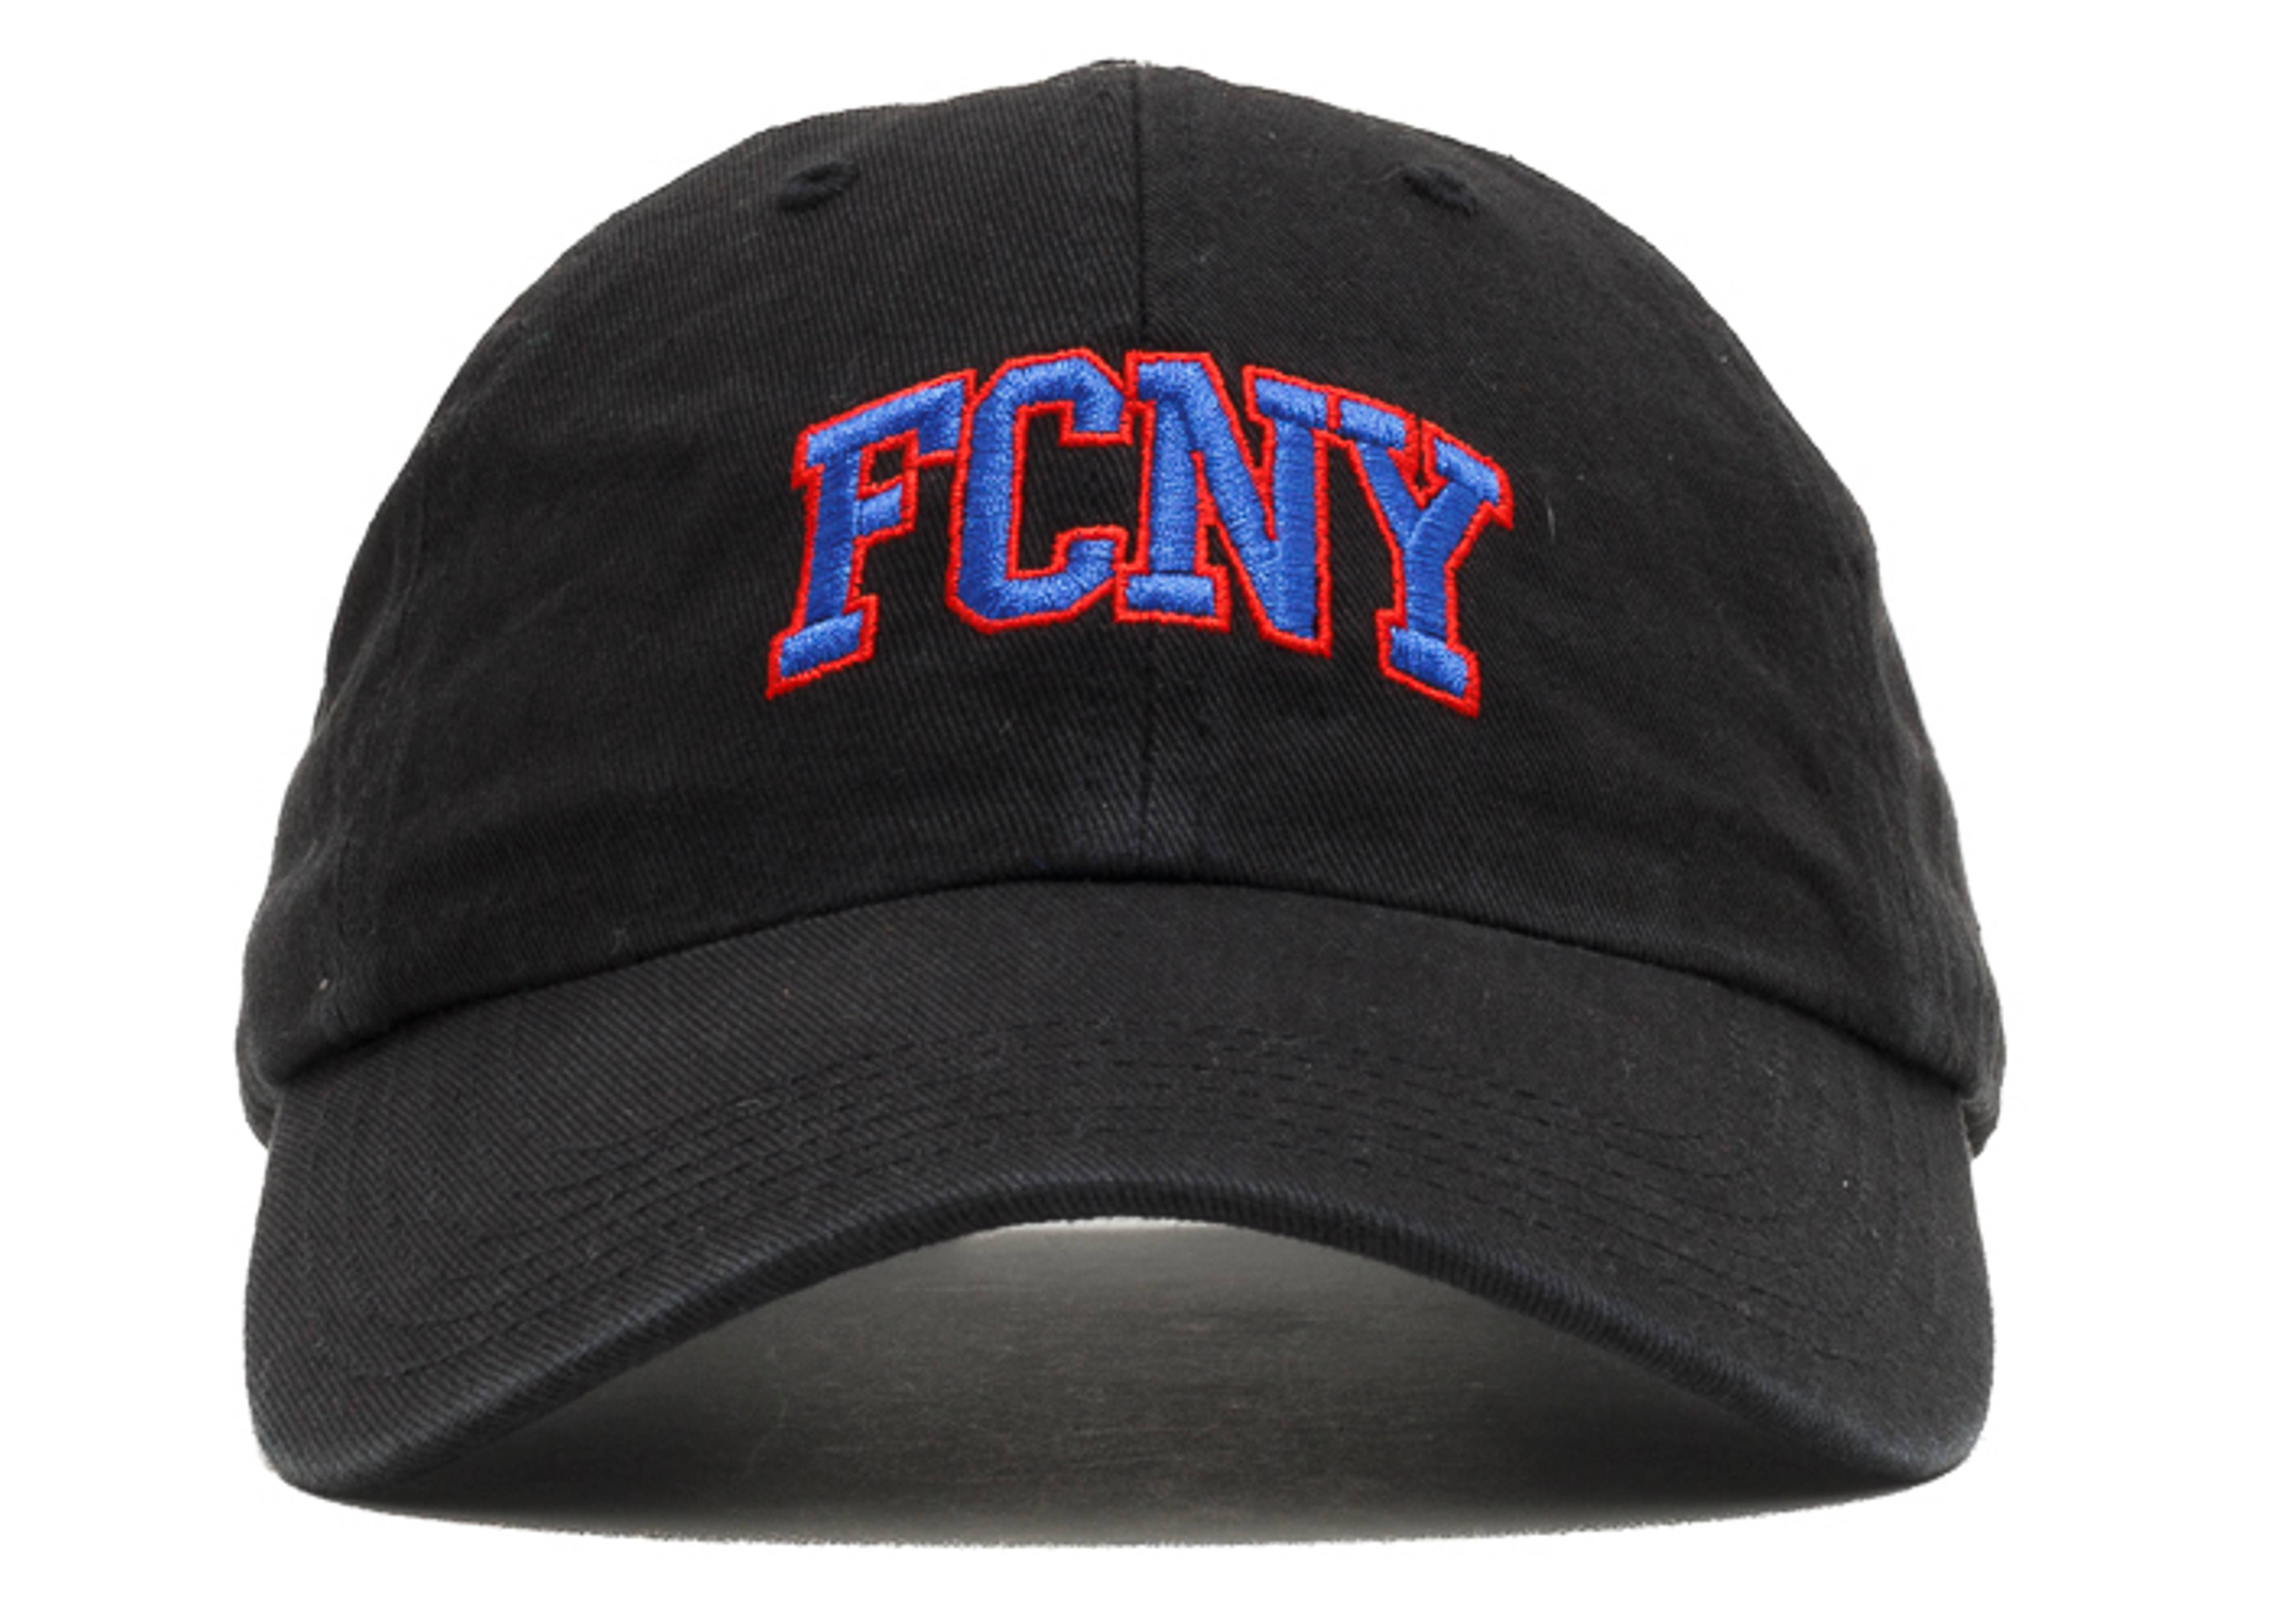 fcny surplus arch cap